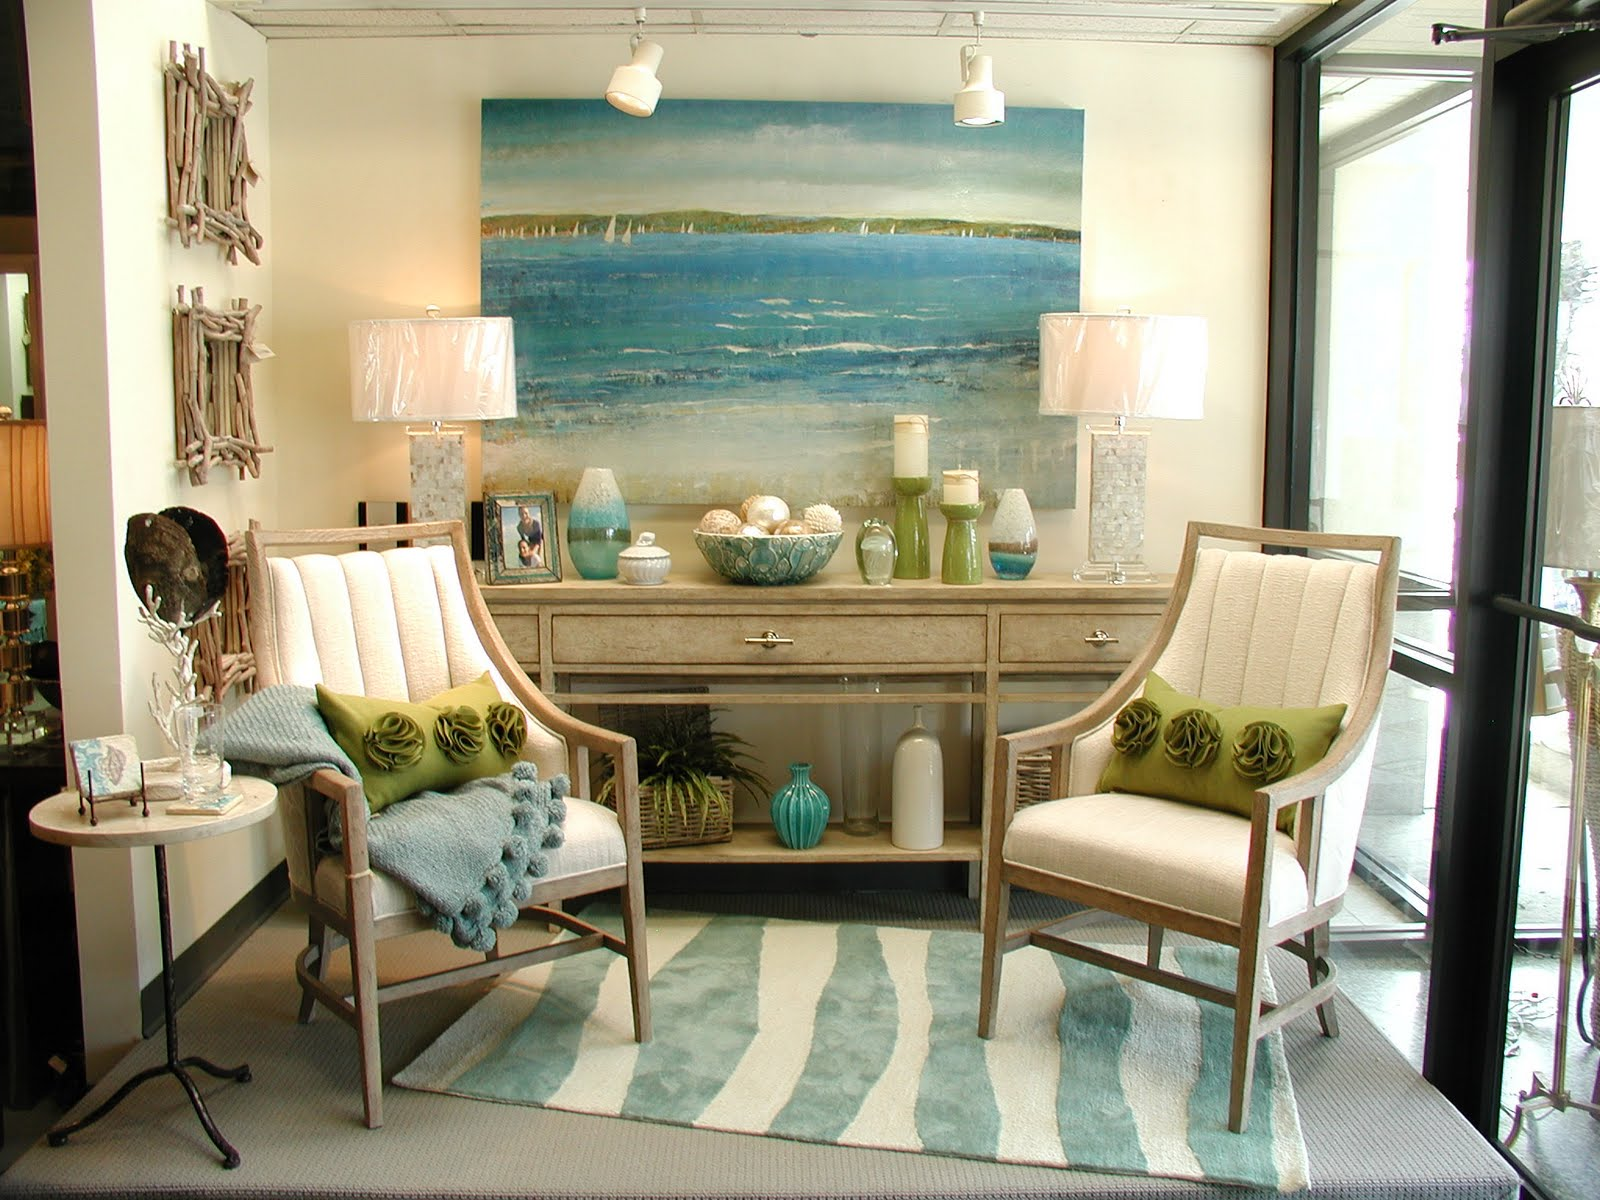 Details of design interior design in annapolis this summer - Decoracion de intriores ...